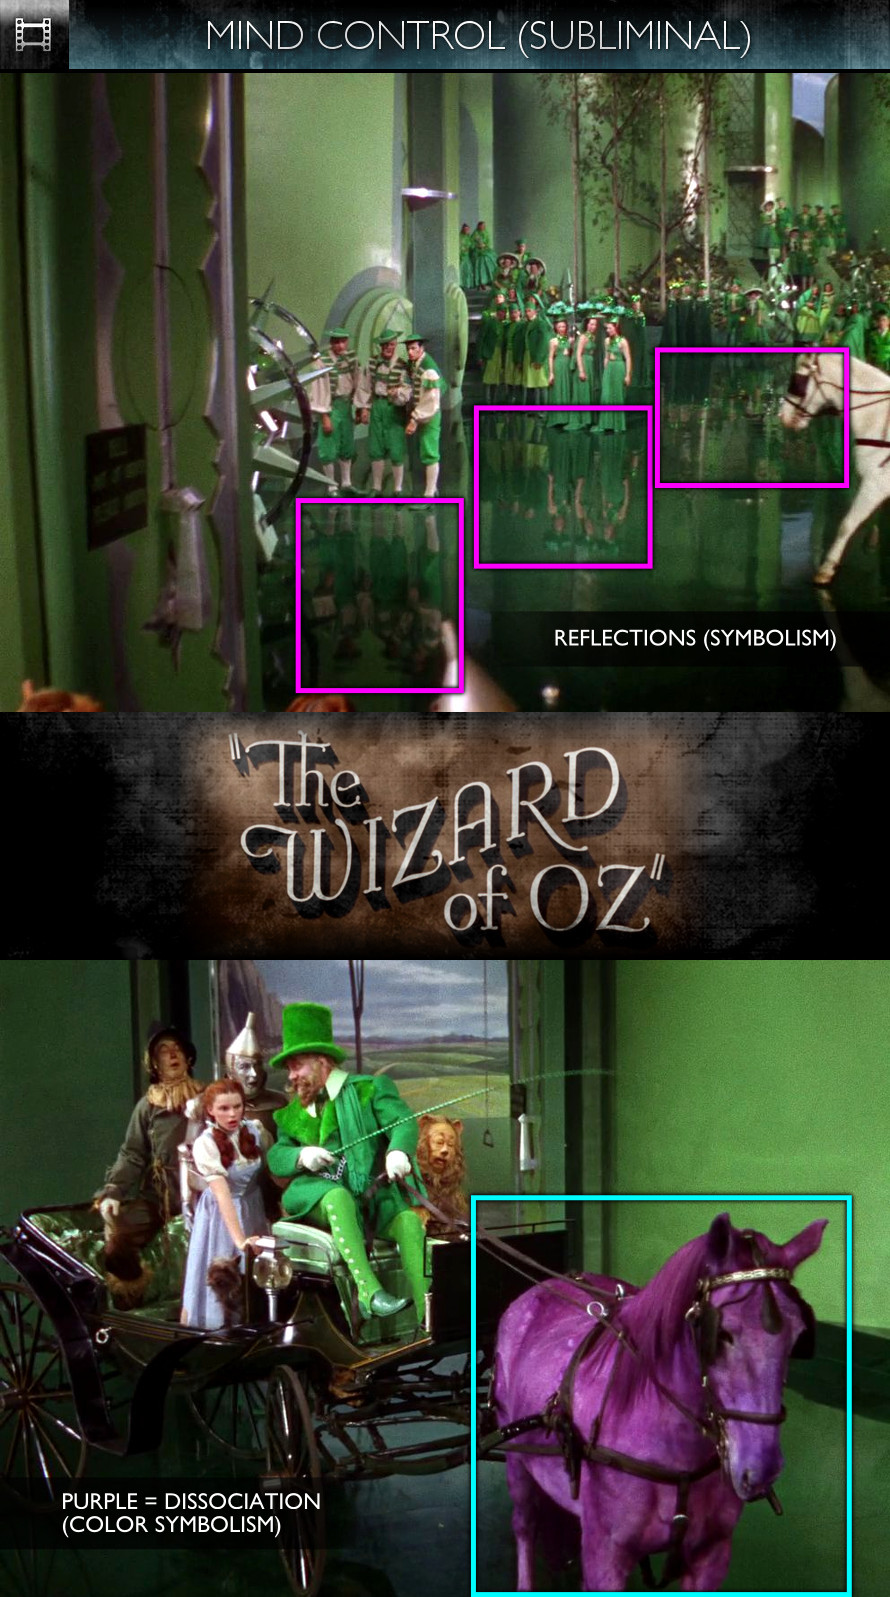 The Wizard of Oz (1939) - Mind Control - Subliminal